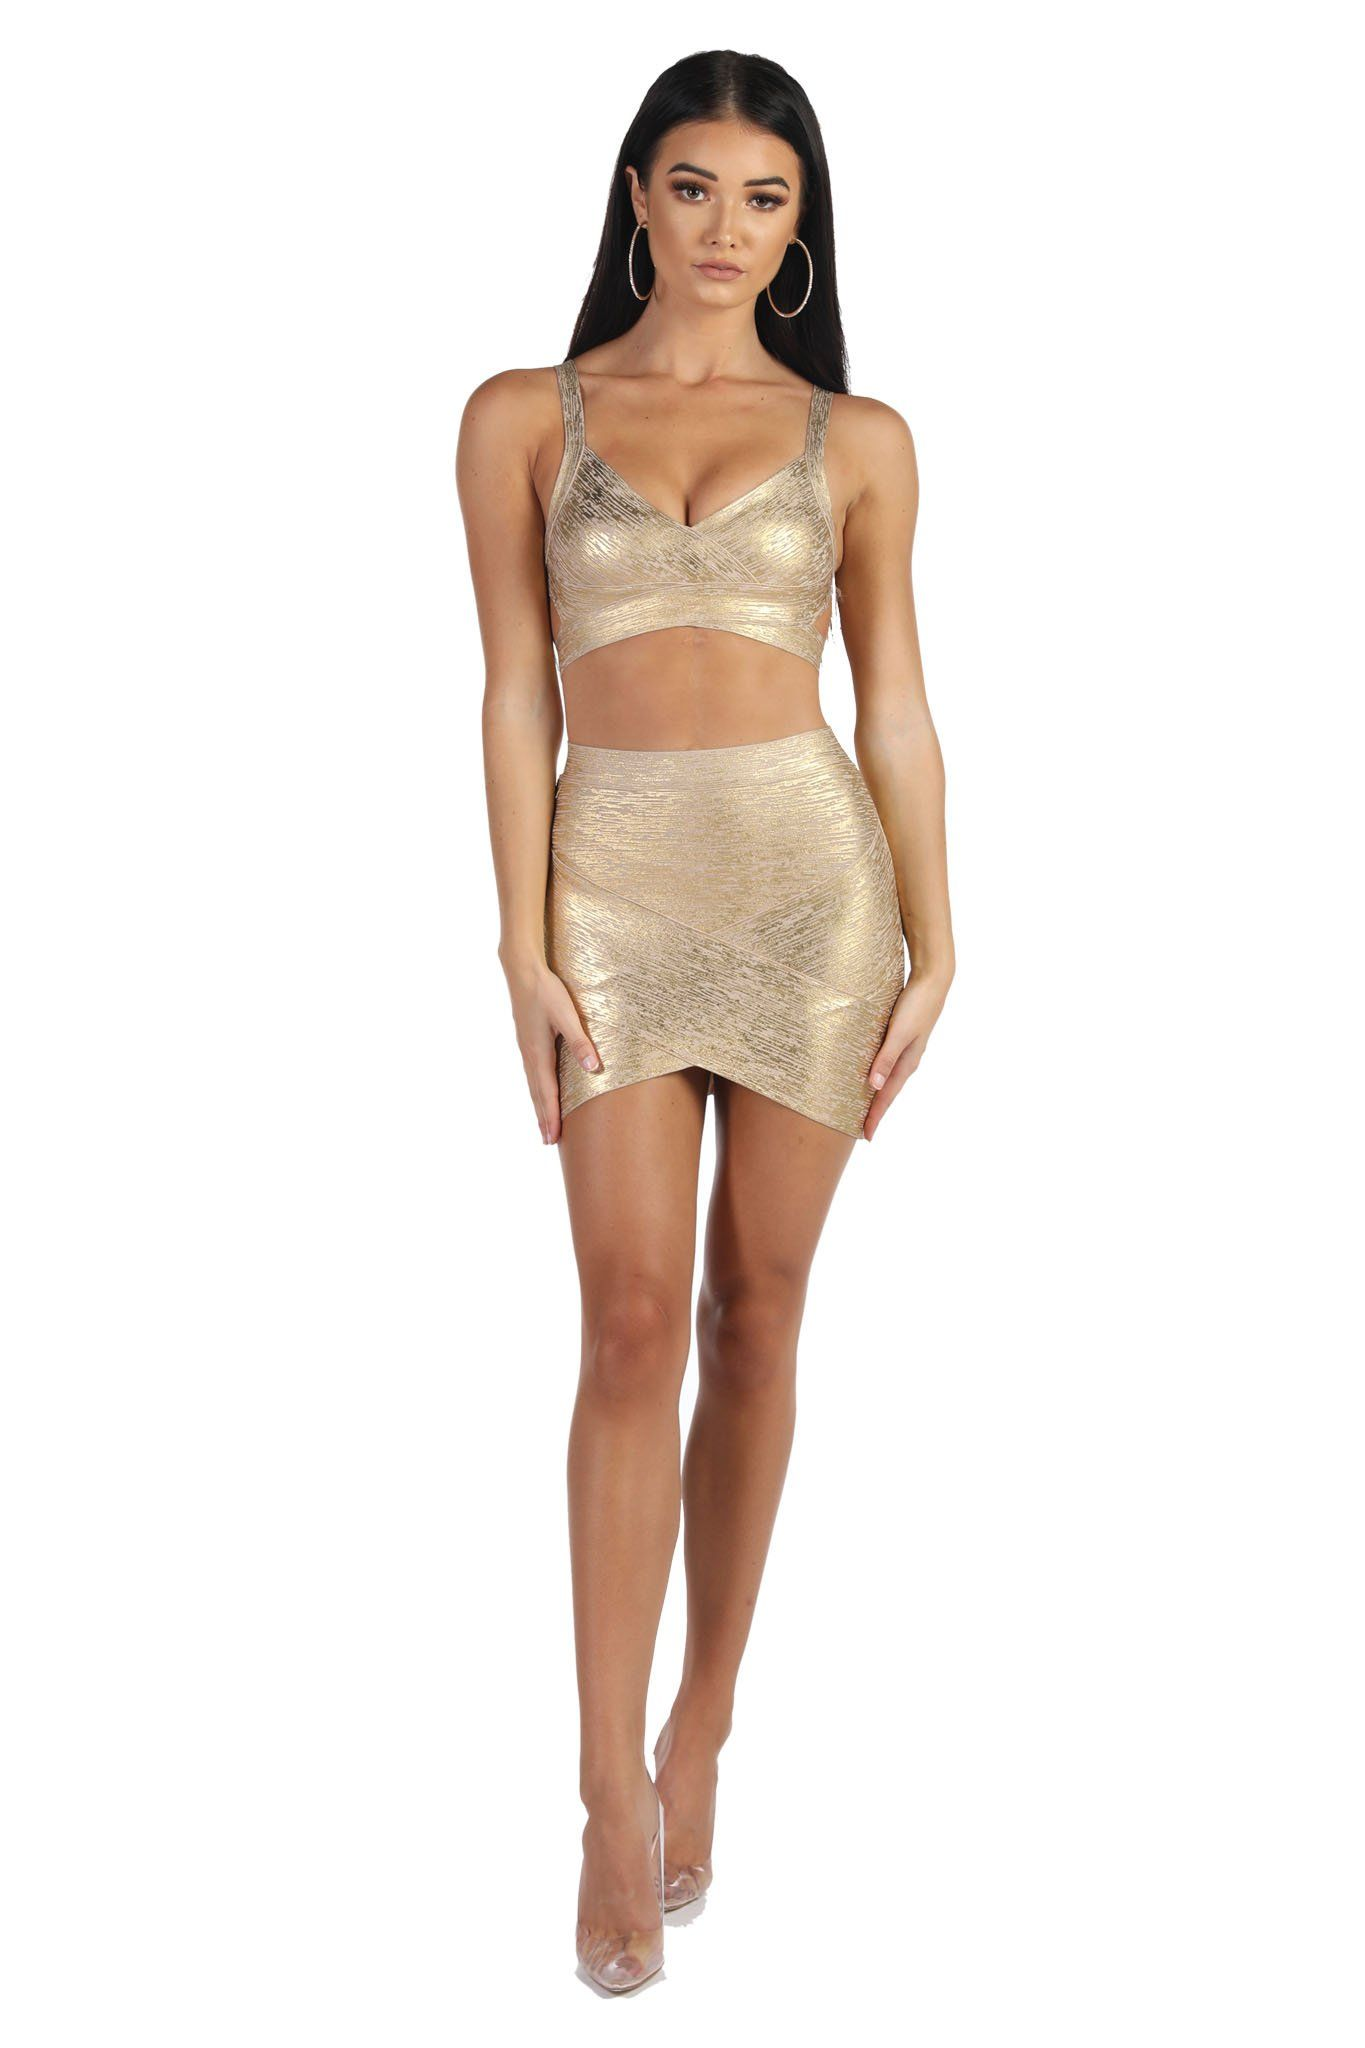 Gold foil bandage matching set including a bralette style top and an asymmetric hem mini skirt